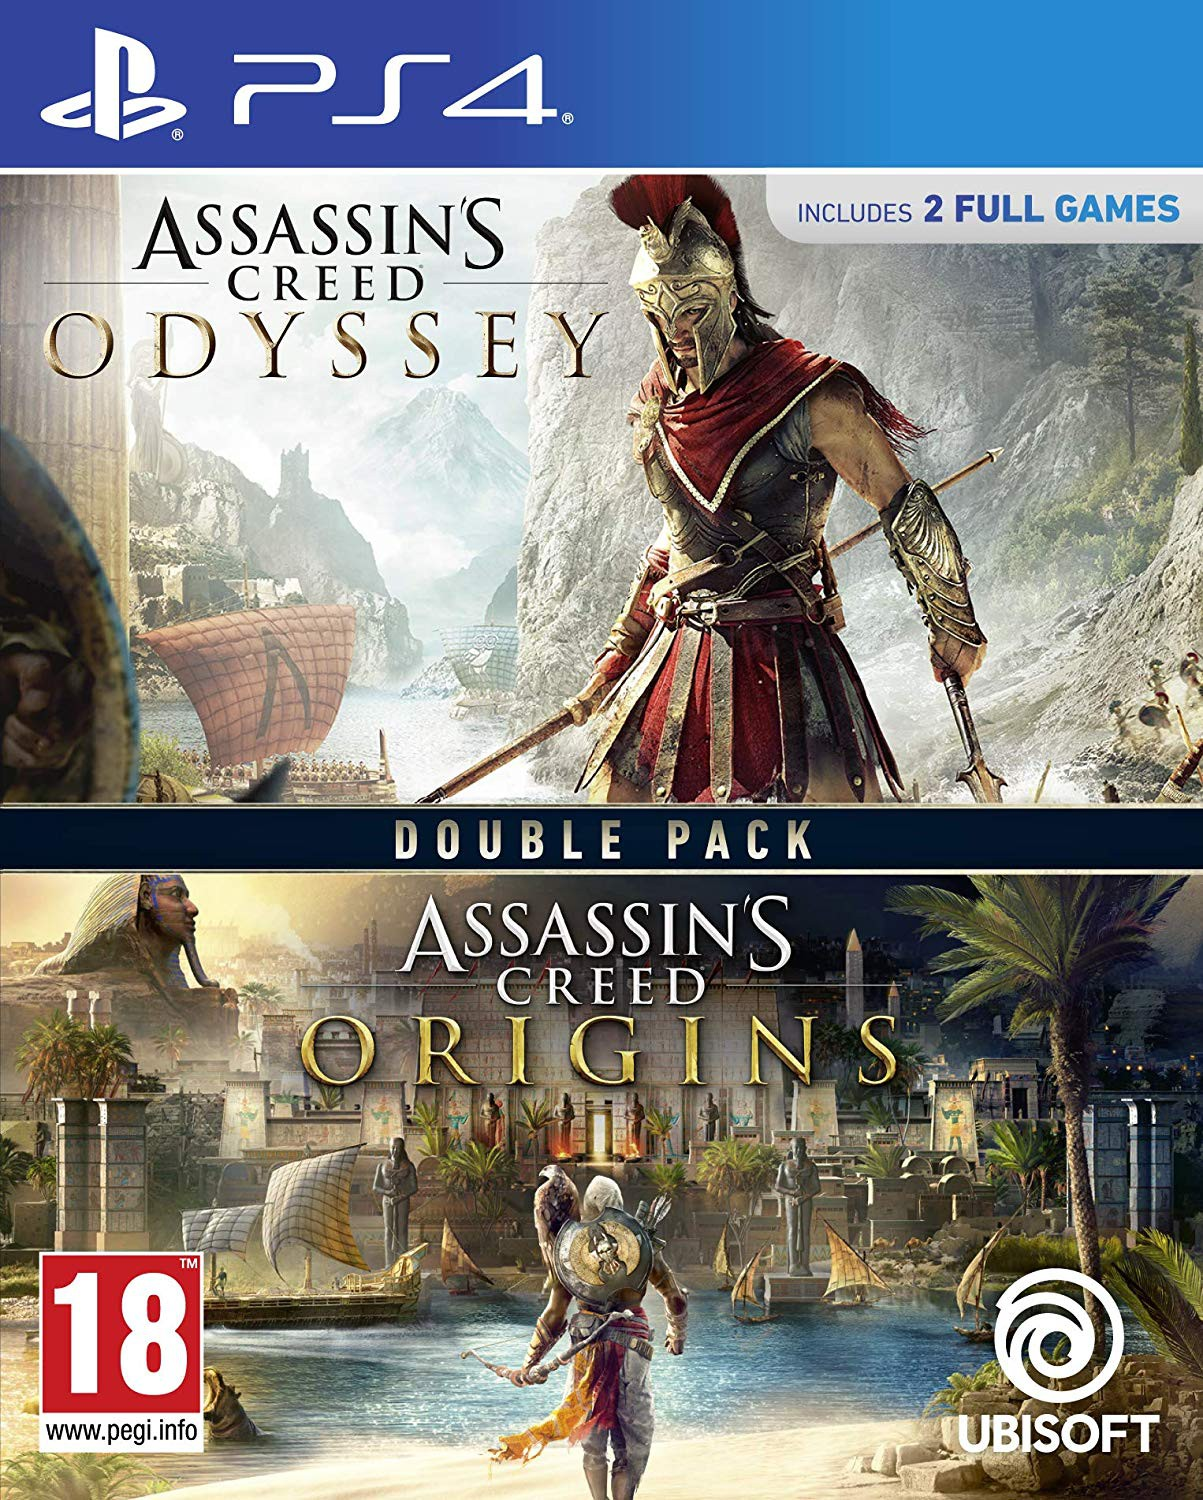 Assassin's Creed Origins + Odyssey Double Pack